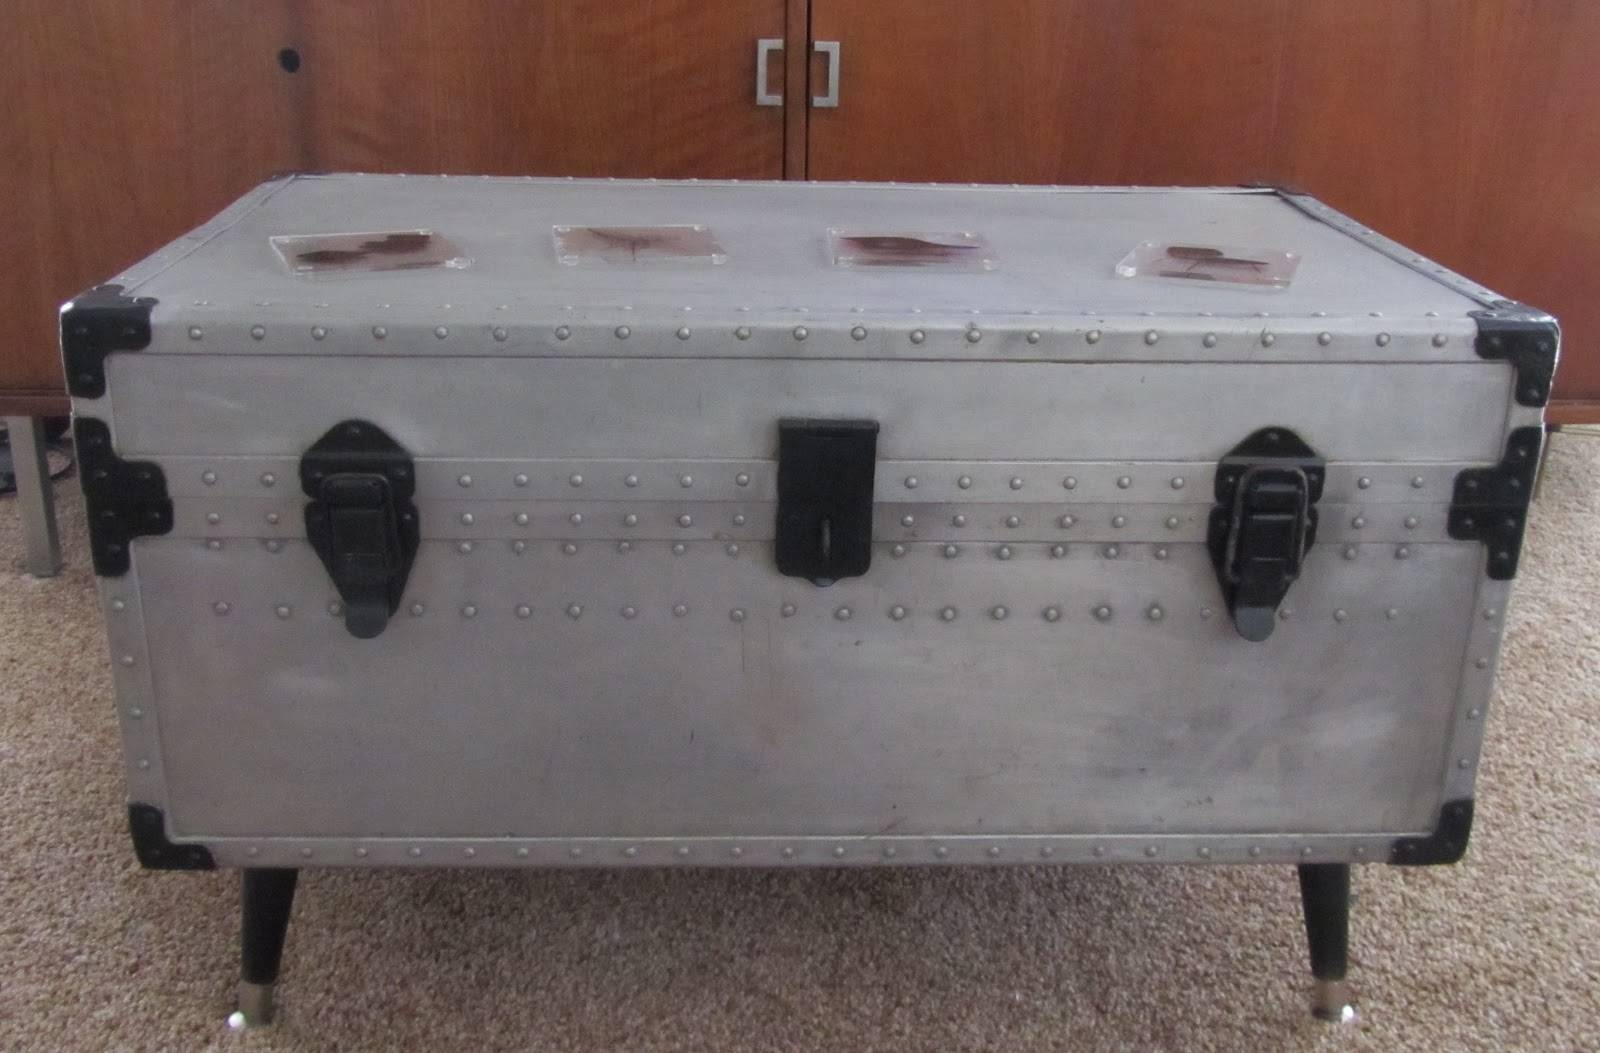 Ideas For Painting A Steamer Trunk Coffee Table intended for Old Trunks As Coffee Tables (Image 15 of 30)